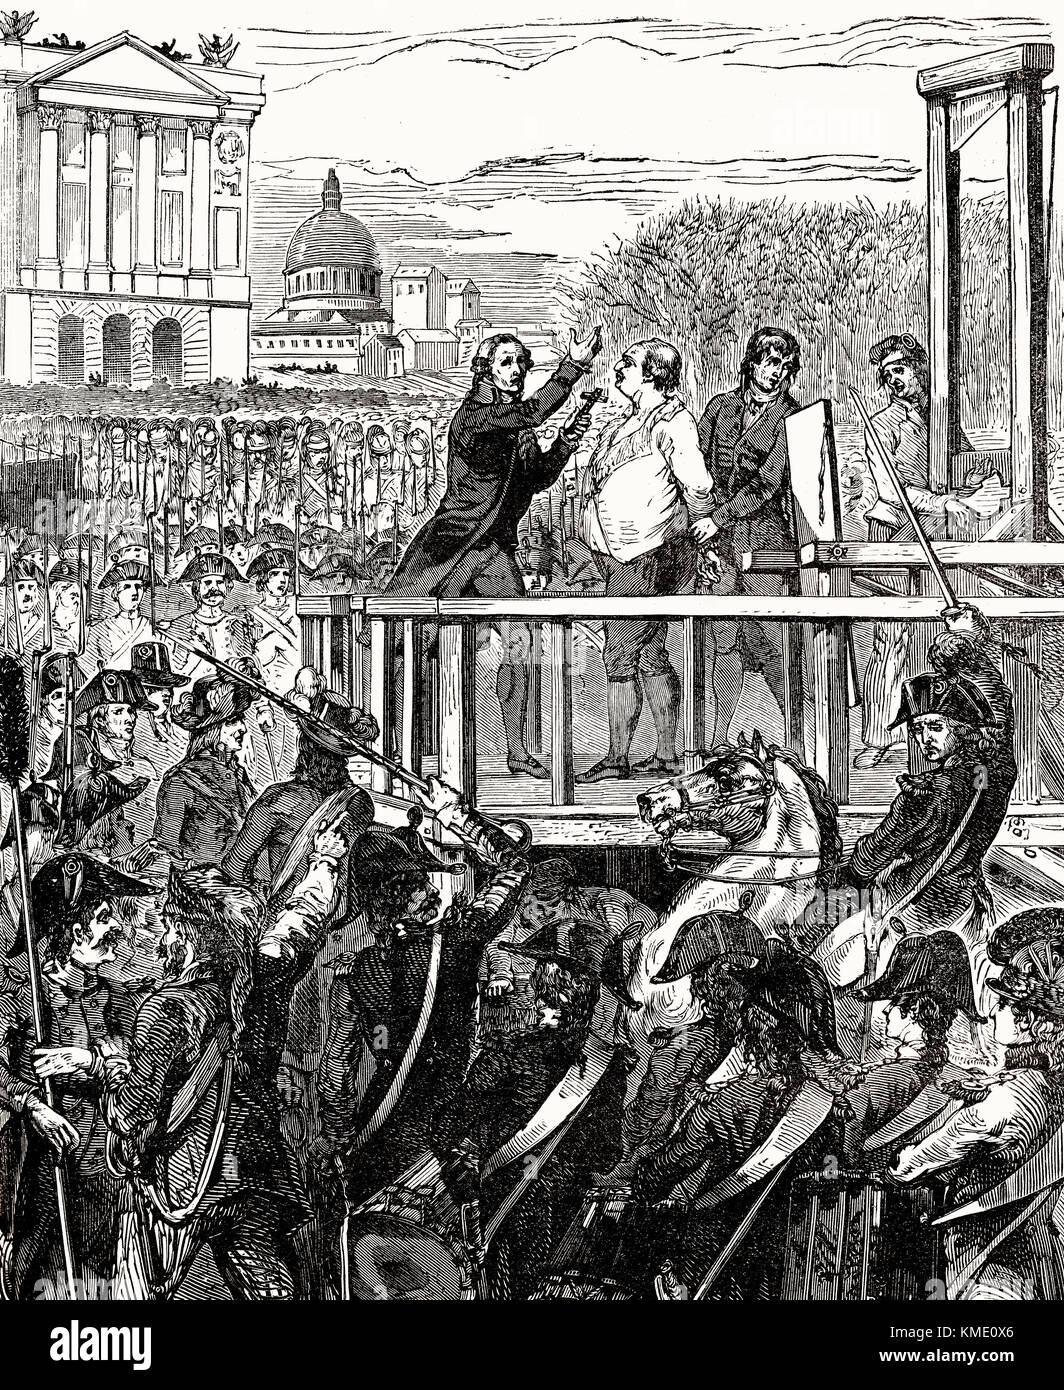 why louis xvi was executed in Louis xvi was executed, officially, because of treason he had been accused of betraying the french nation to the austrians now, in fairness, louis xvi had pretty clearly tried to flee paris in order to organize a counter-revolution.